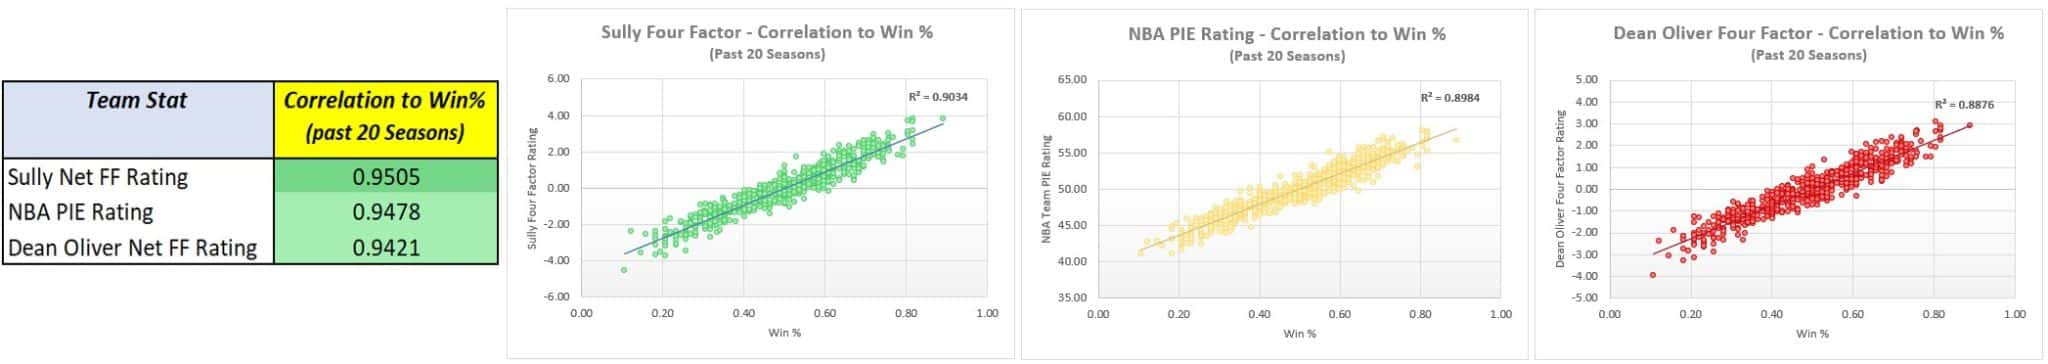 NBA's Most Valuable Statistic (Team Edition)